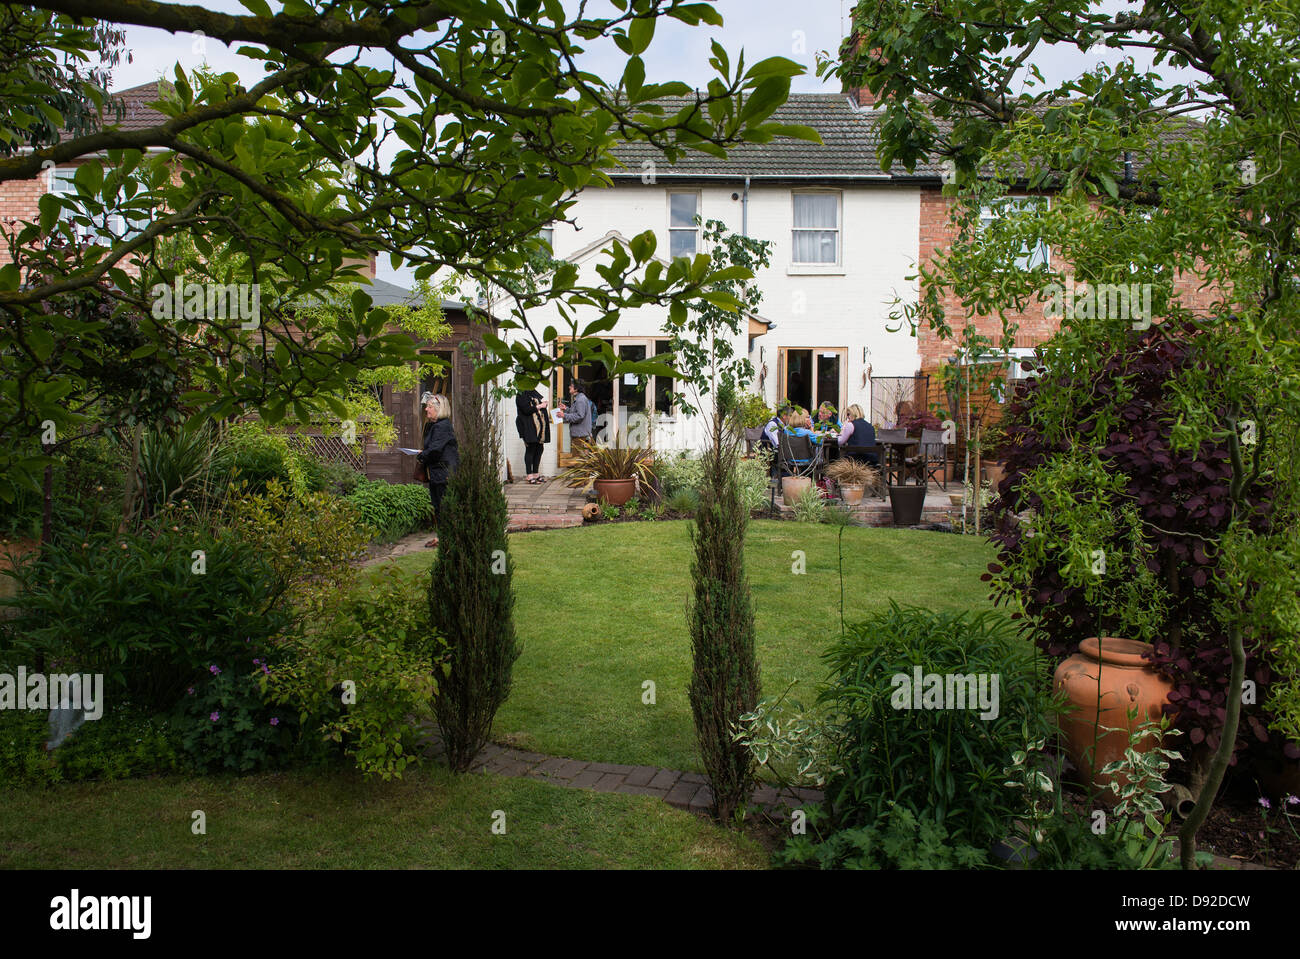 View of a garden with people enjoying the company. - Stock Image